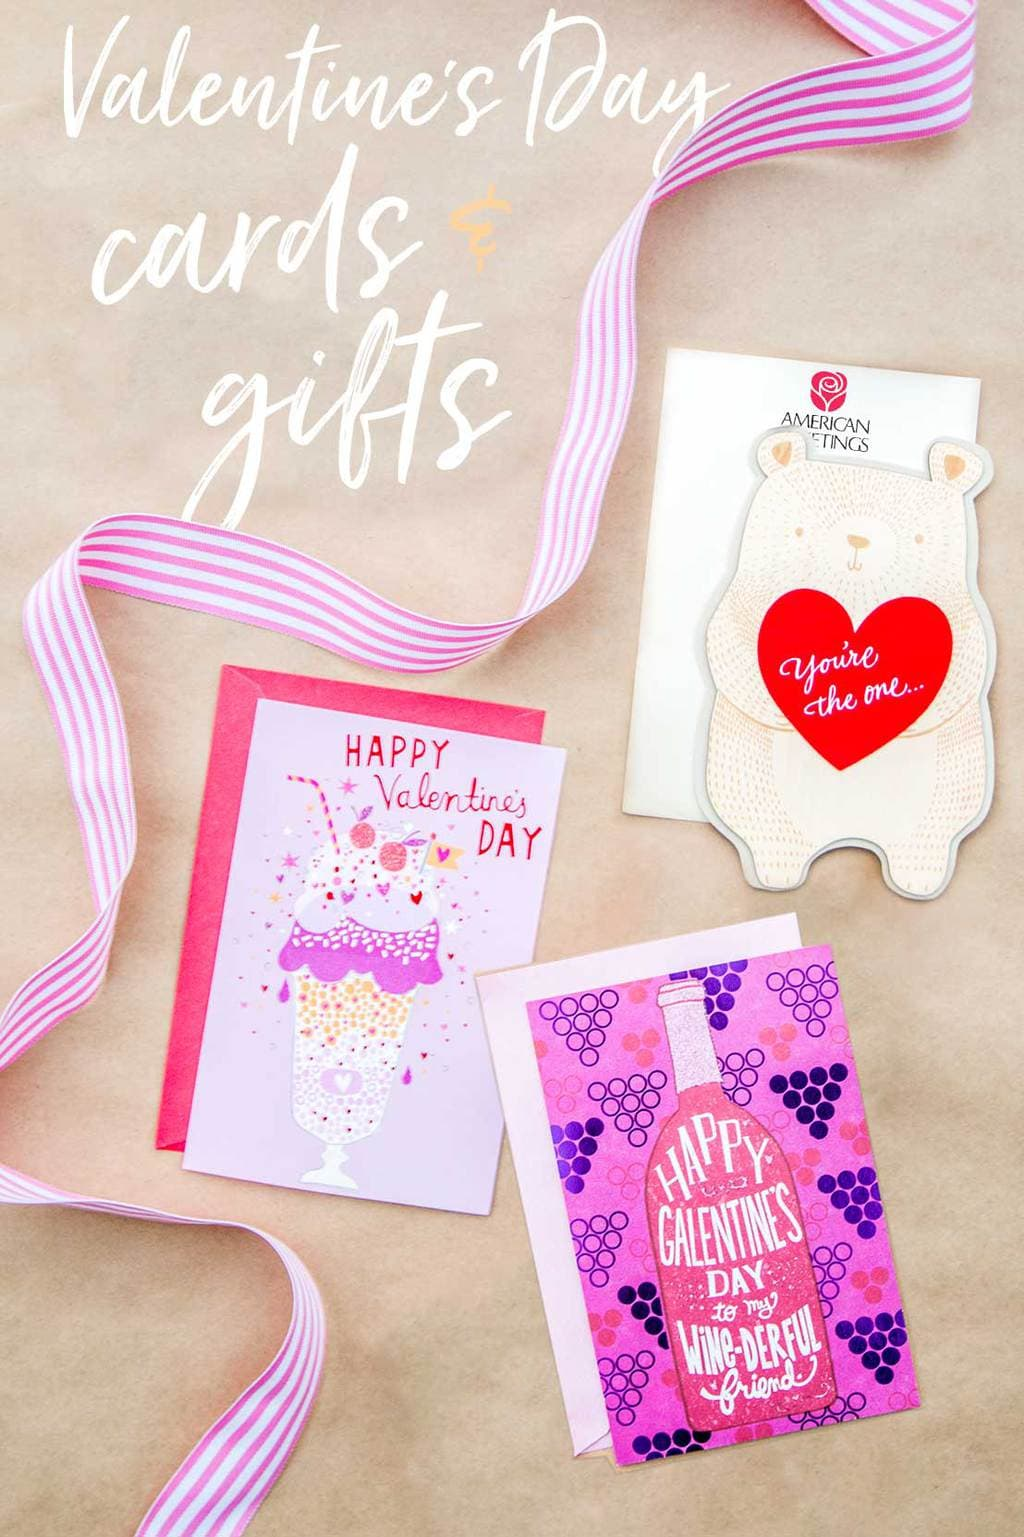 Perfect valentine 39 s day card gift pairings thou swell for Perfect valentines day gifts